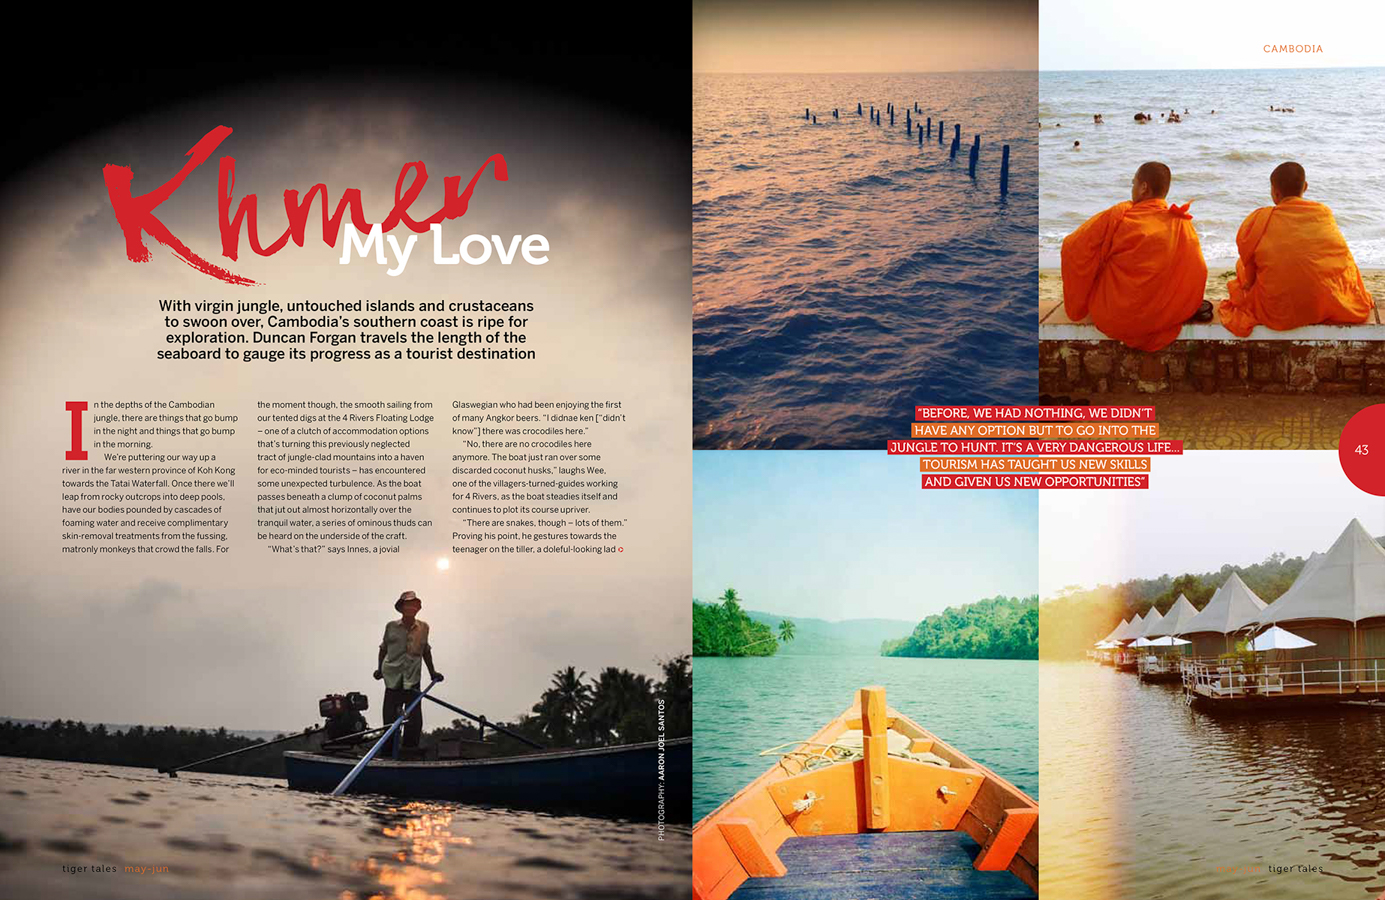 Cambodia-Travel-Tearsheets-1